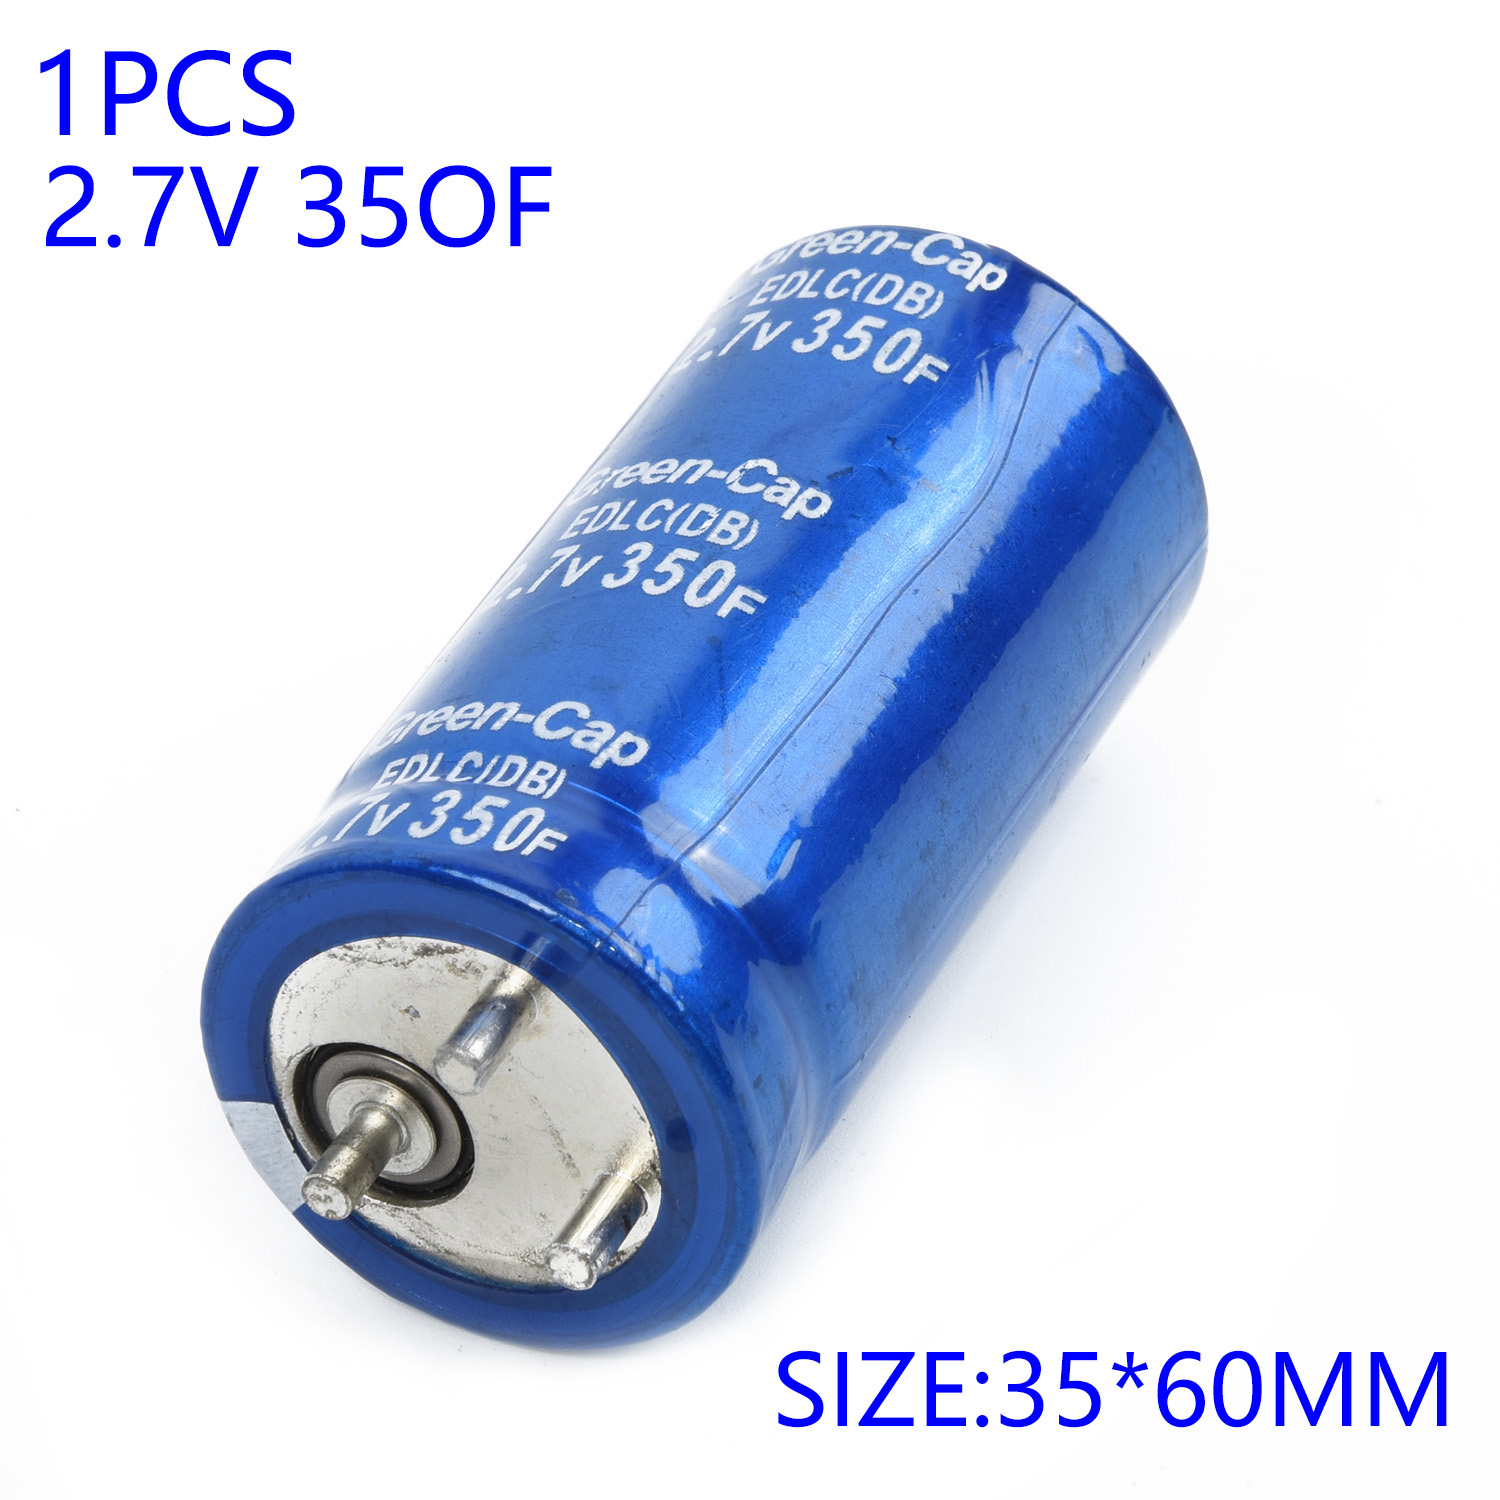 Component Capacitor 2.7V Replacement Blue 35x60mm Farad For Maxwell Accessories Electrical Durable And Practical To Use